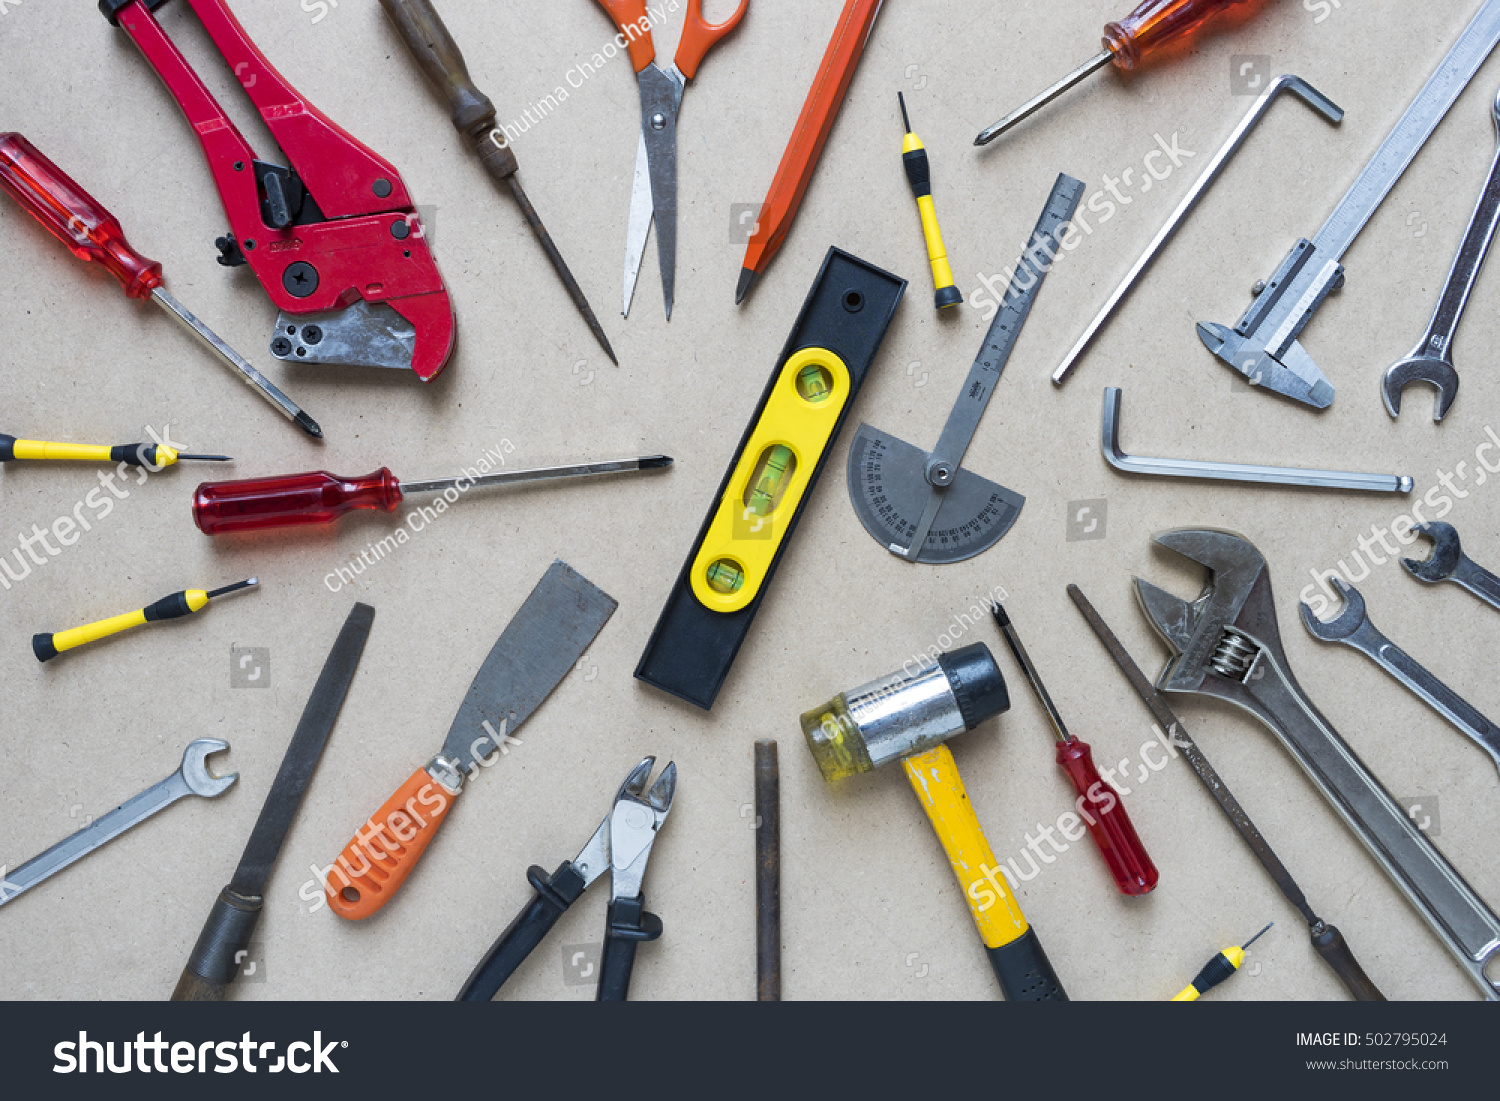 stock-photo-old-tools-on-a-wooden-table-502795024.jpg